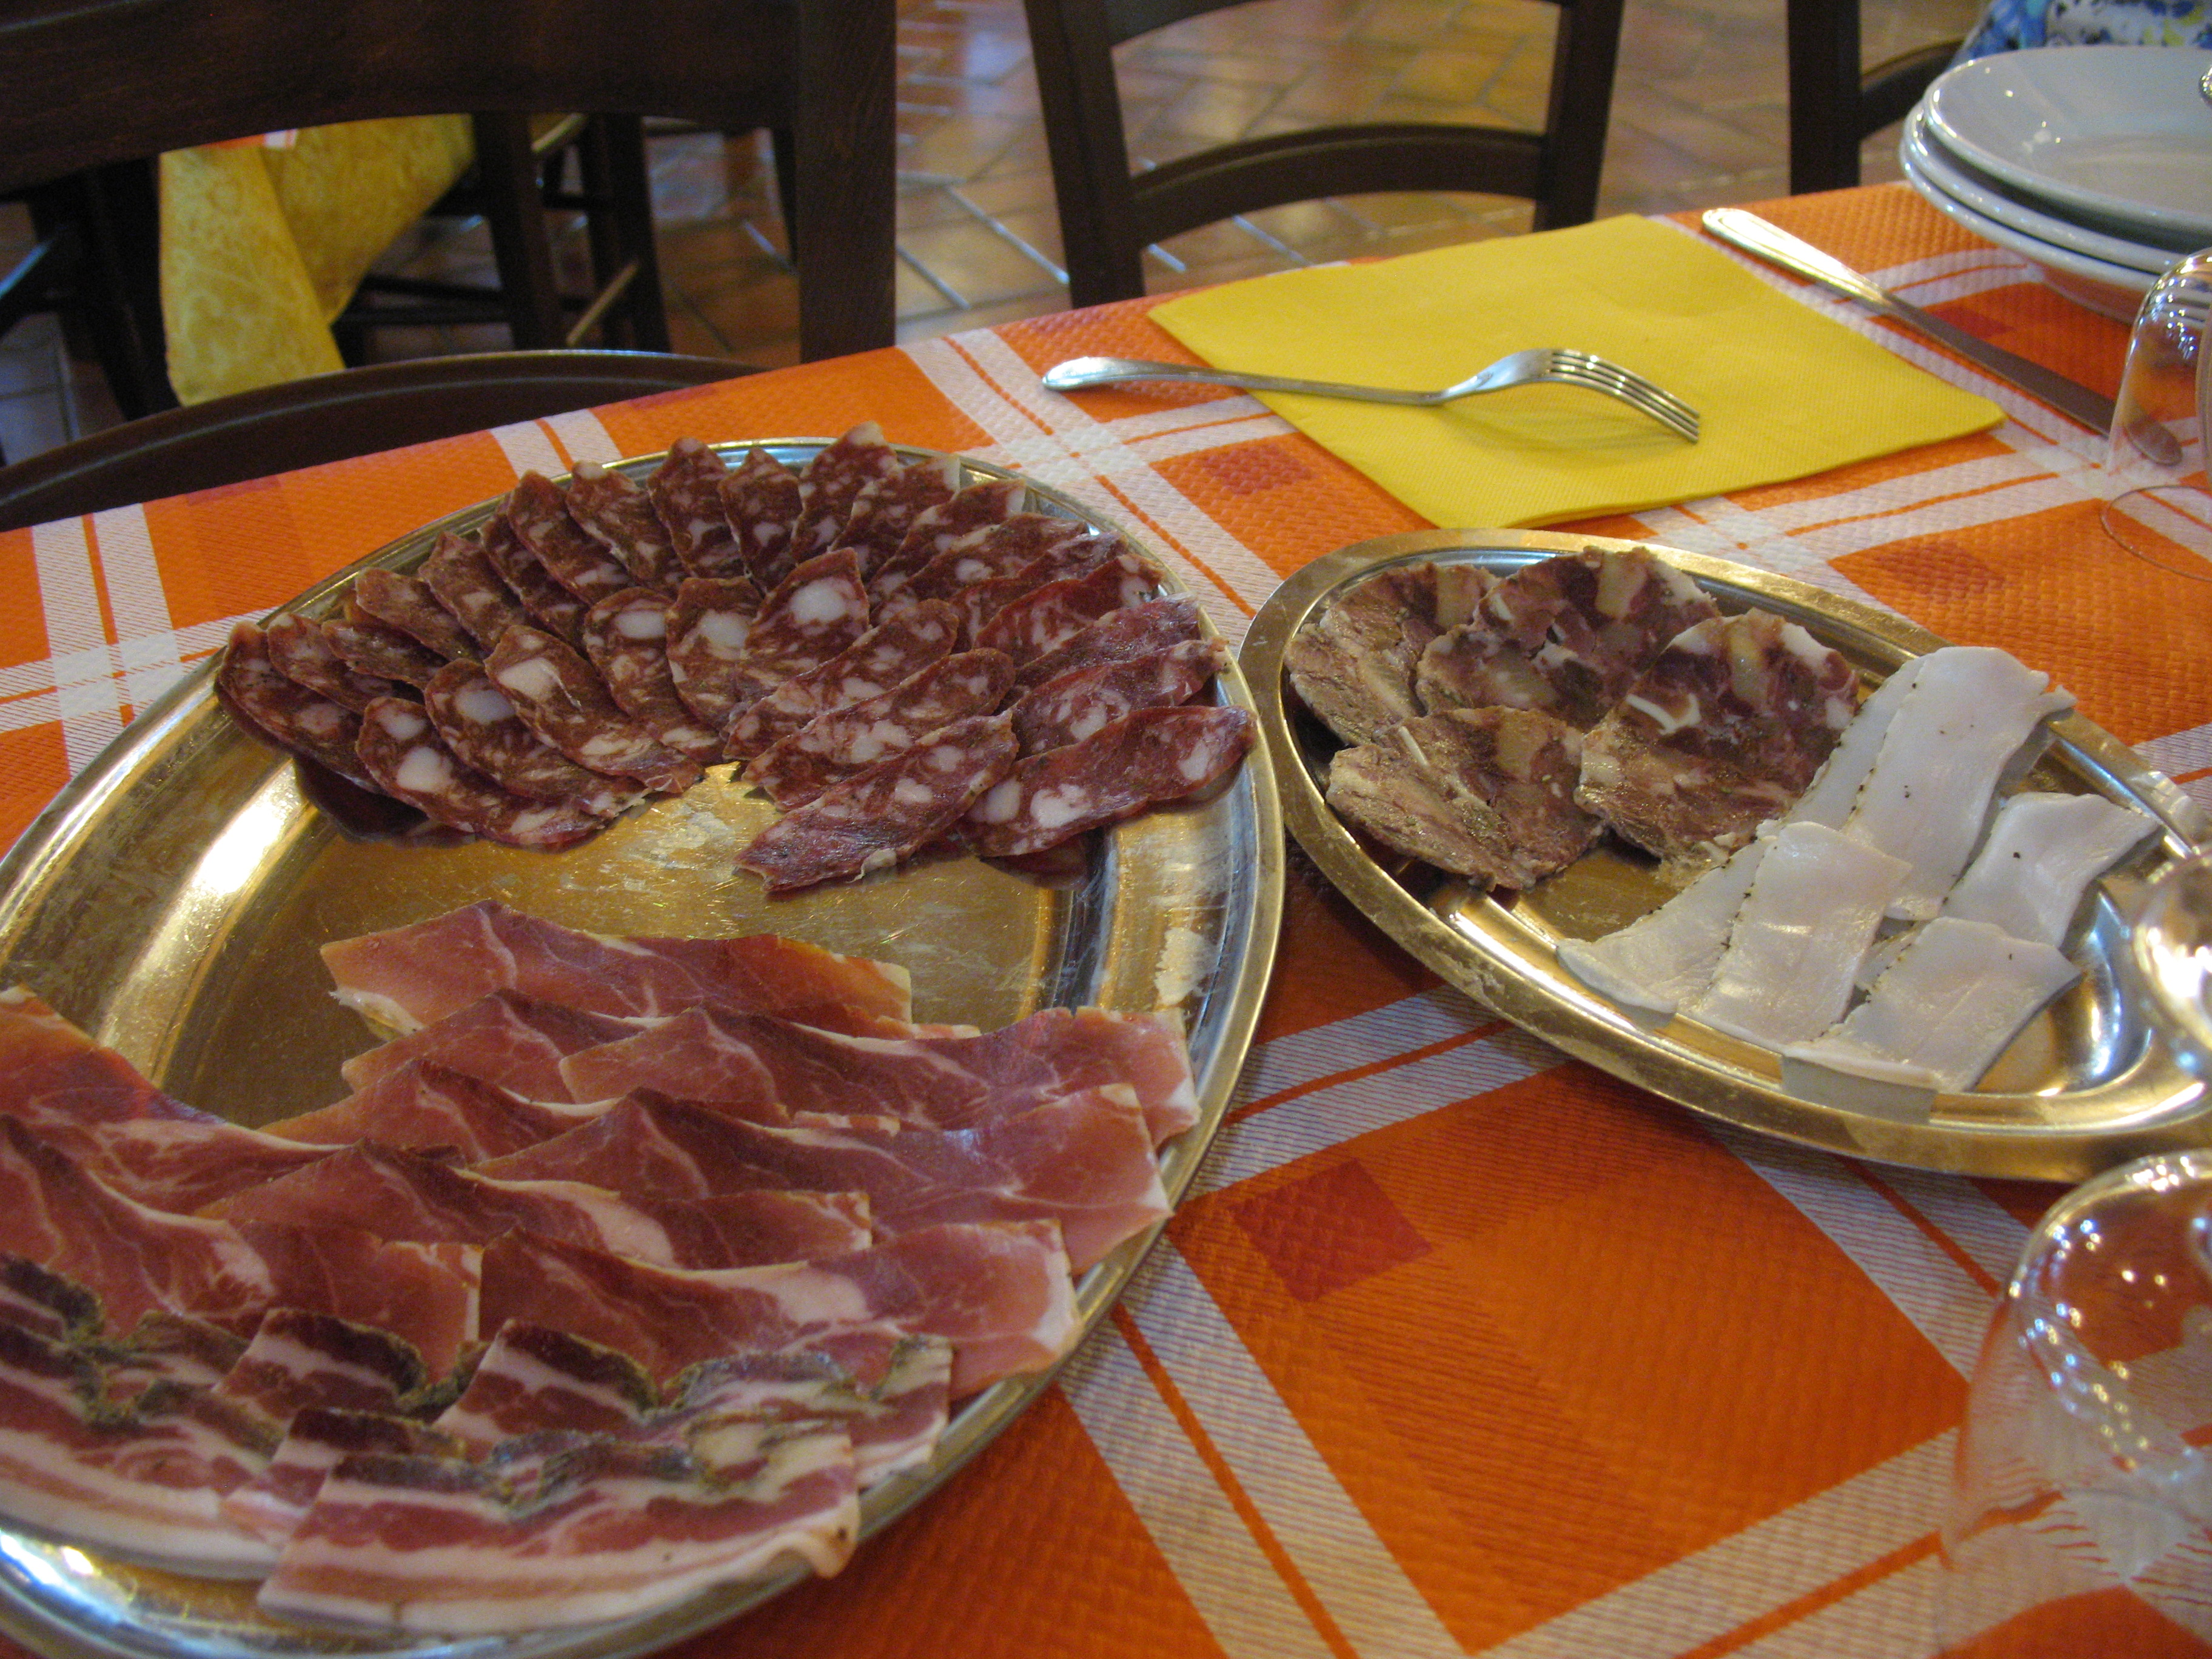 A selection of meats for 4 (!) persons (and we already ate part of it before taking the picture...